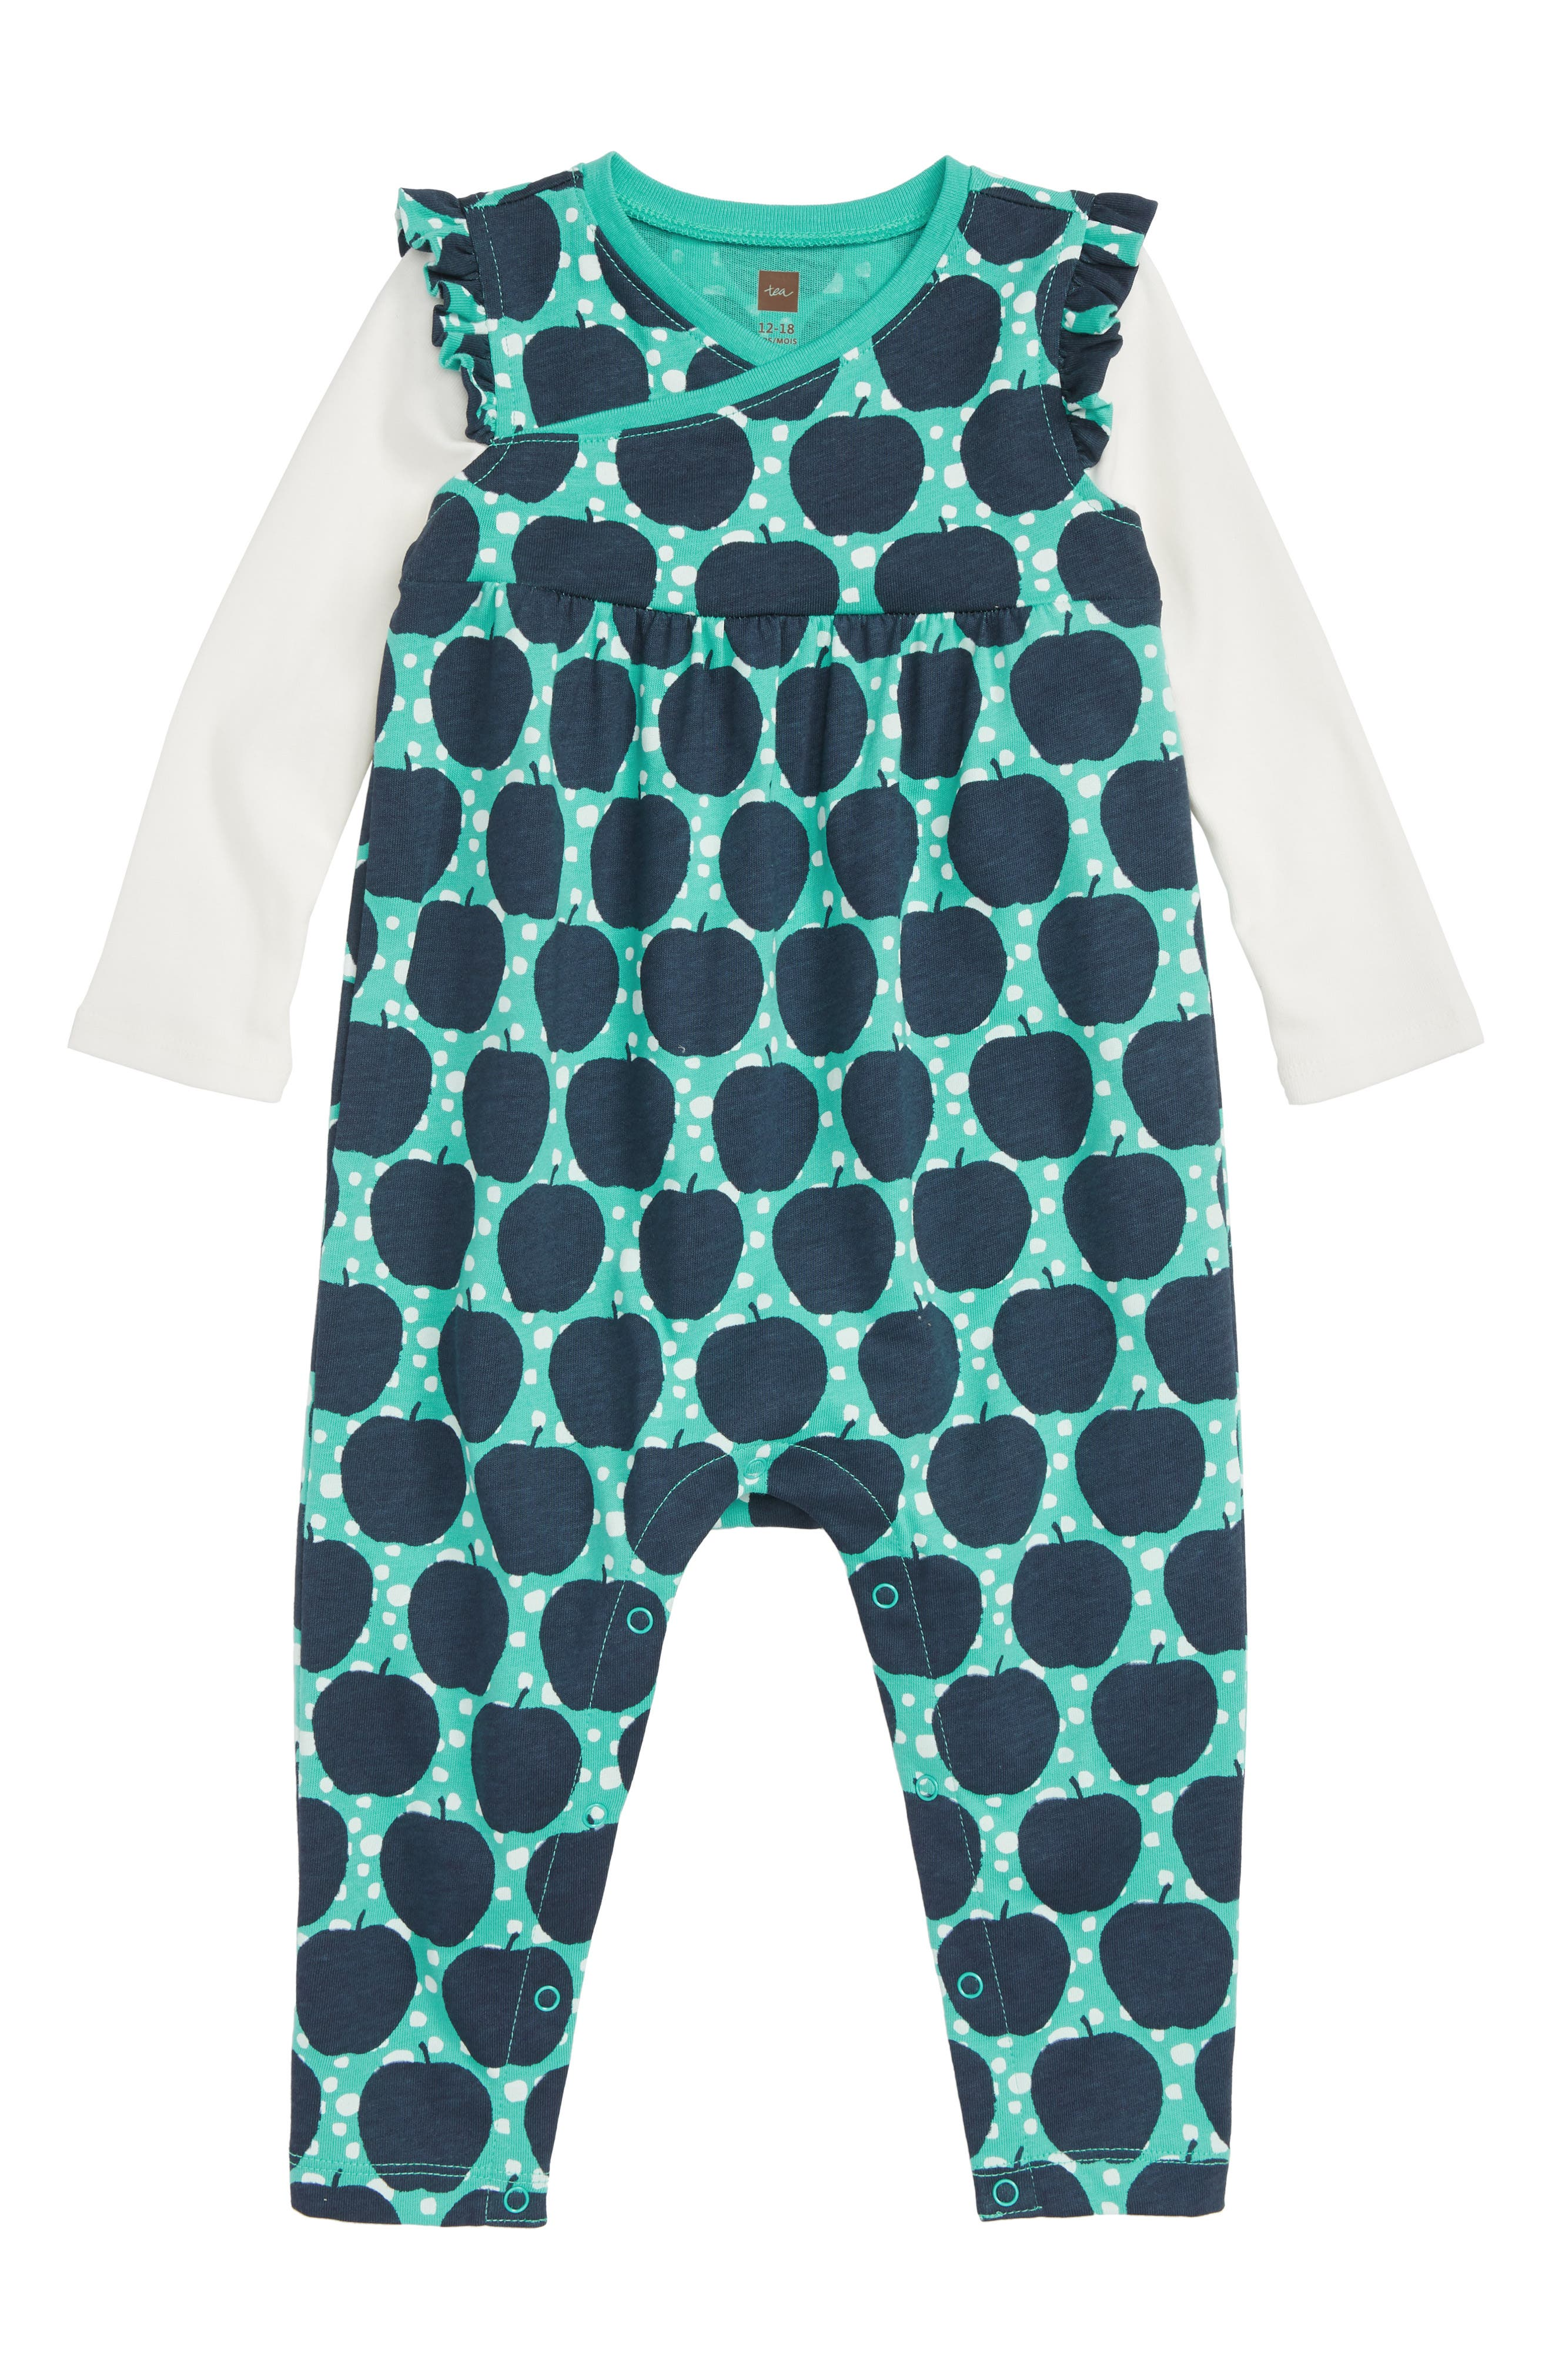 Double Decker Flutter Romper,                             Main thumbnail 1, color,                             APPLE WAX PRINT